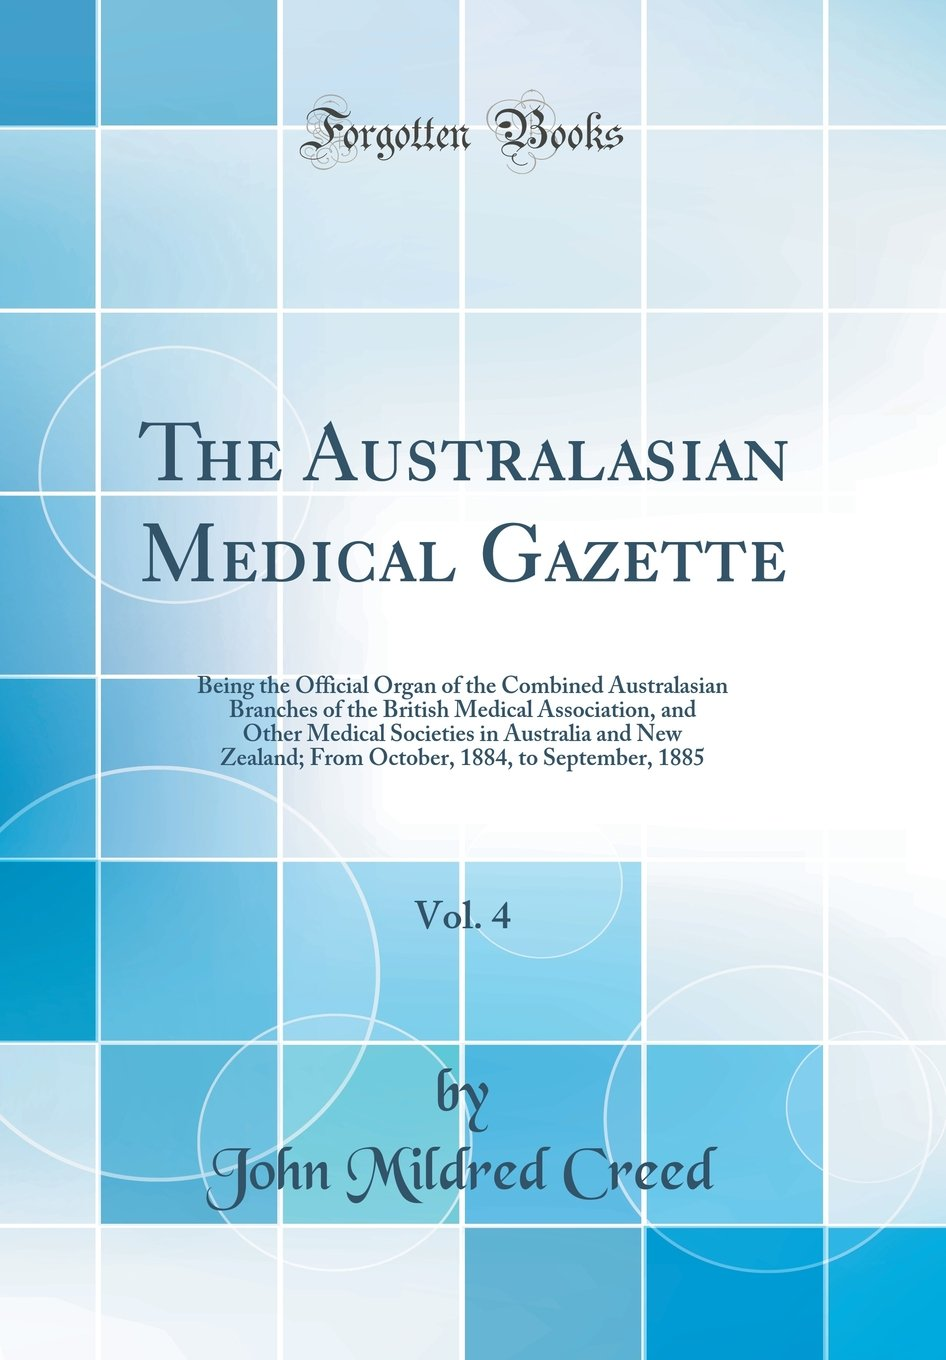 Download The Australasian Medical Gazette, Vol. 4: Being the Official Organ of the Combined Australasian Branches of the British Medical Association, and Other ... From October, 1884, to September, 1885 PDF